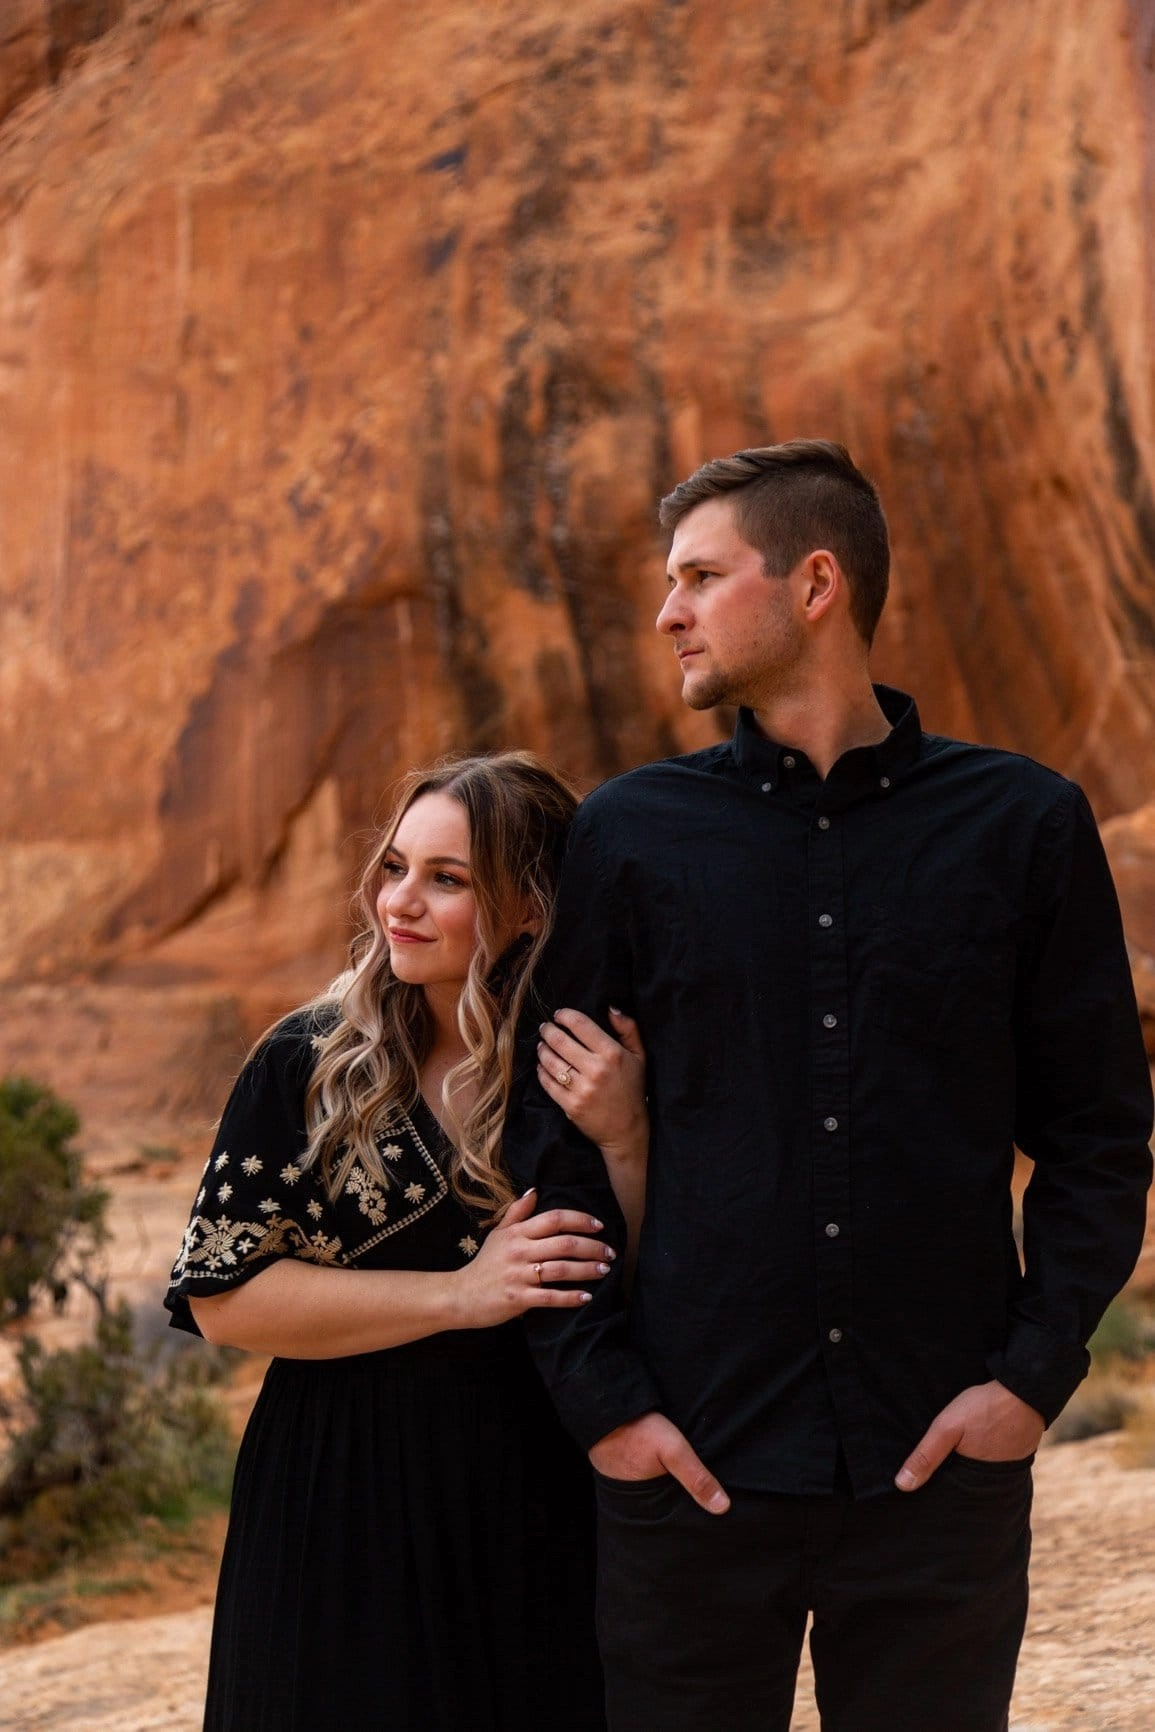 Beautiful people holding one another in Utah